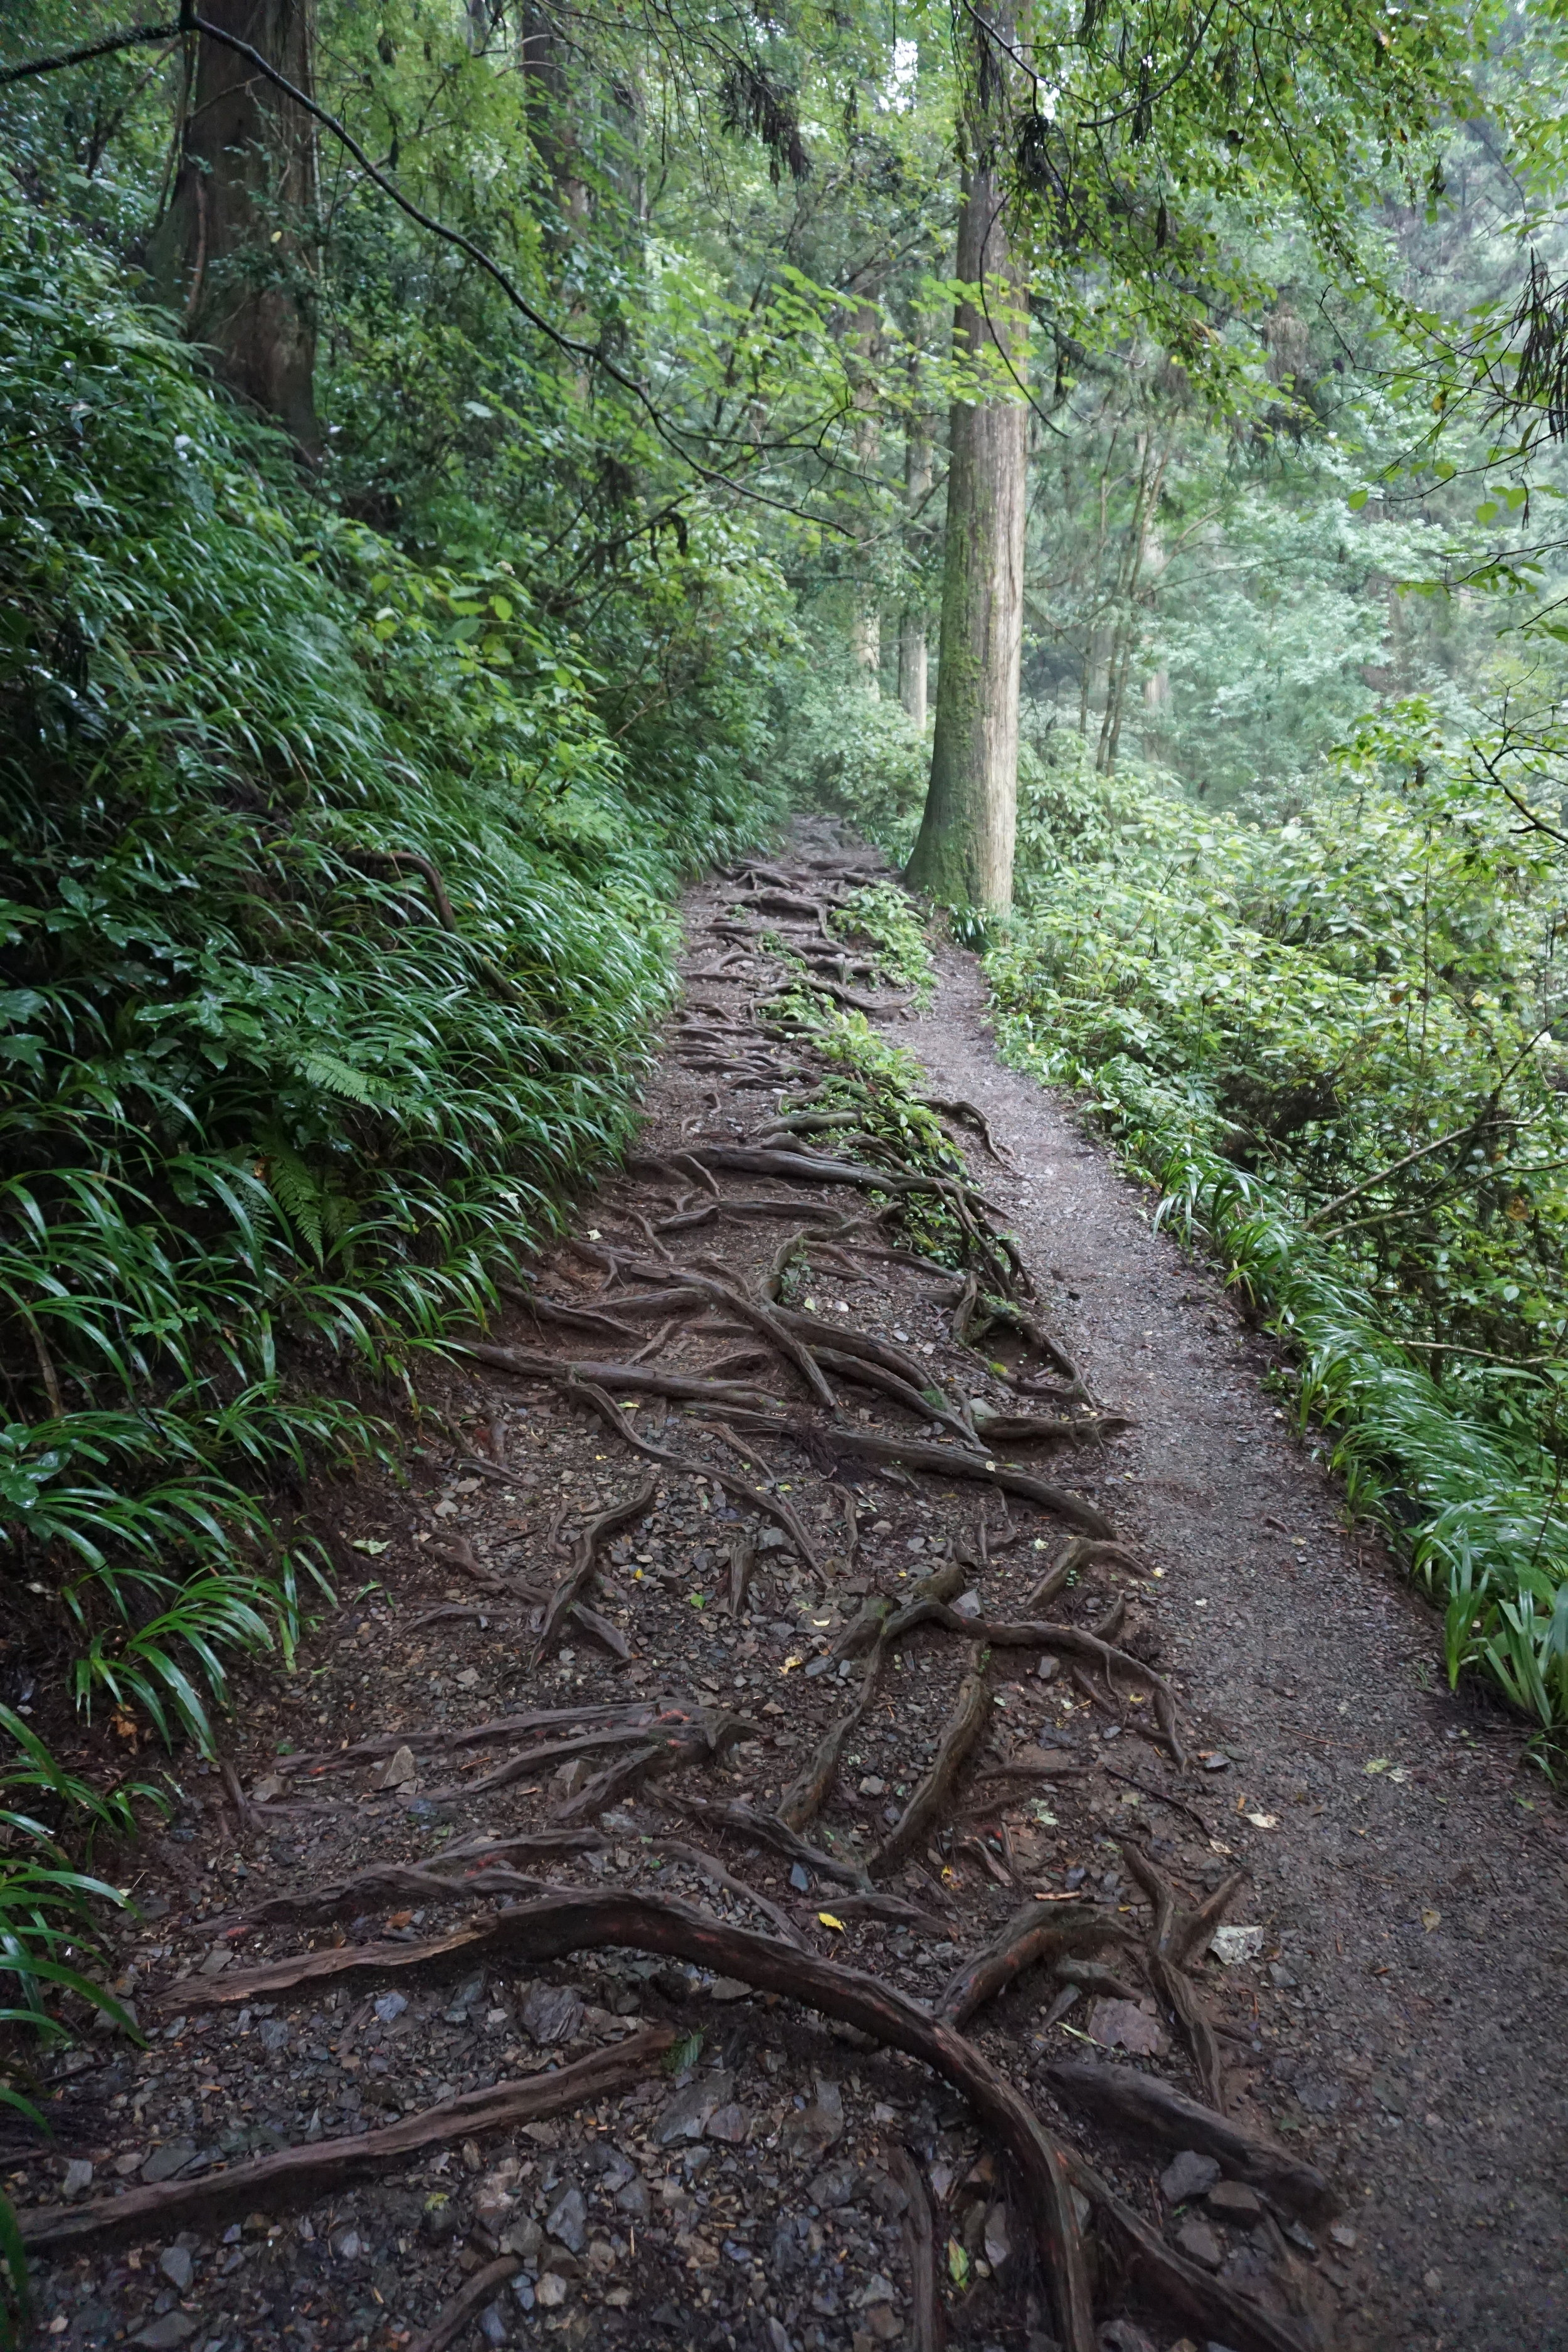 Exposed roots along trail 6 on the way to summit Takao San.